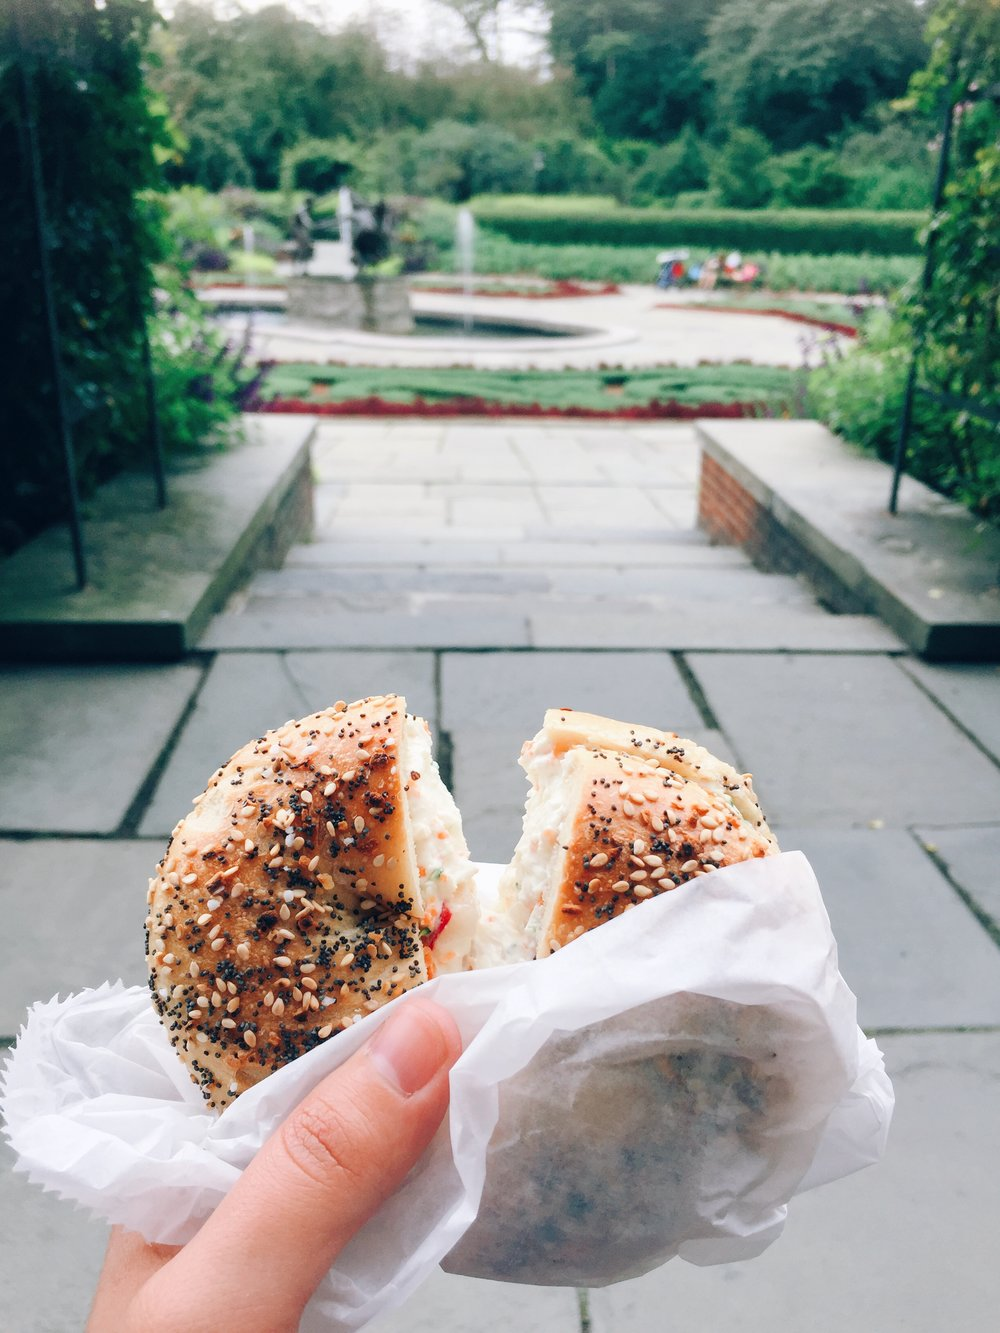 TBH I still dream about this bagel...